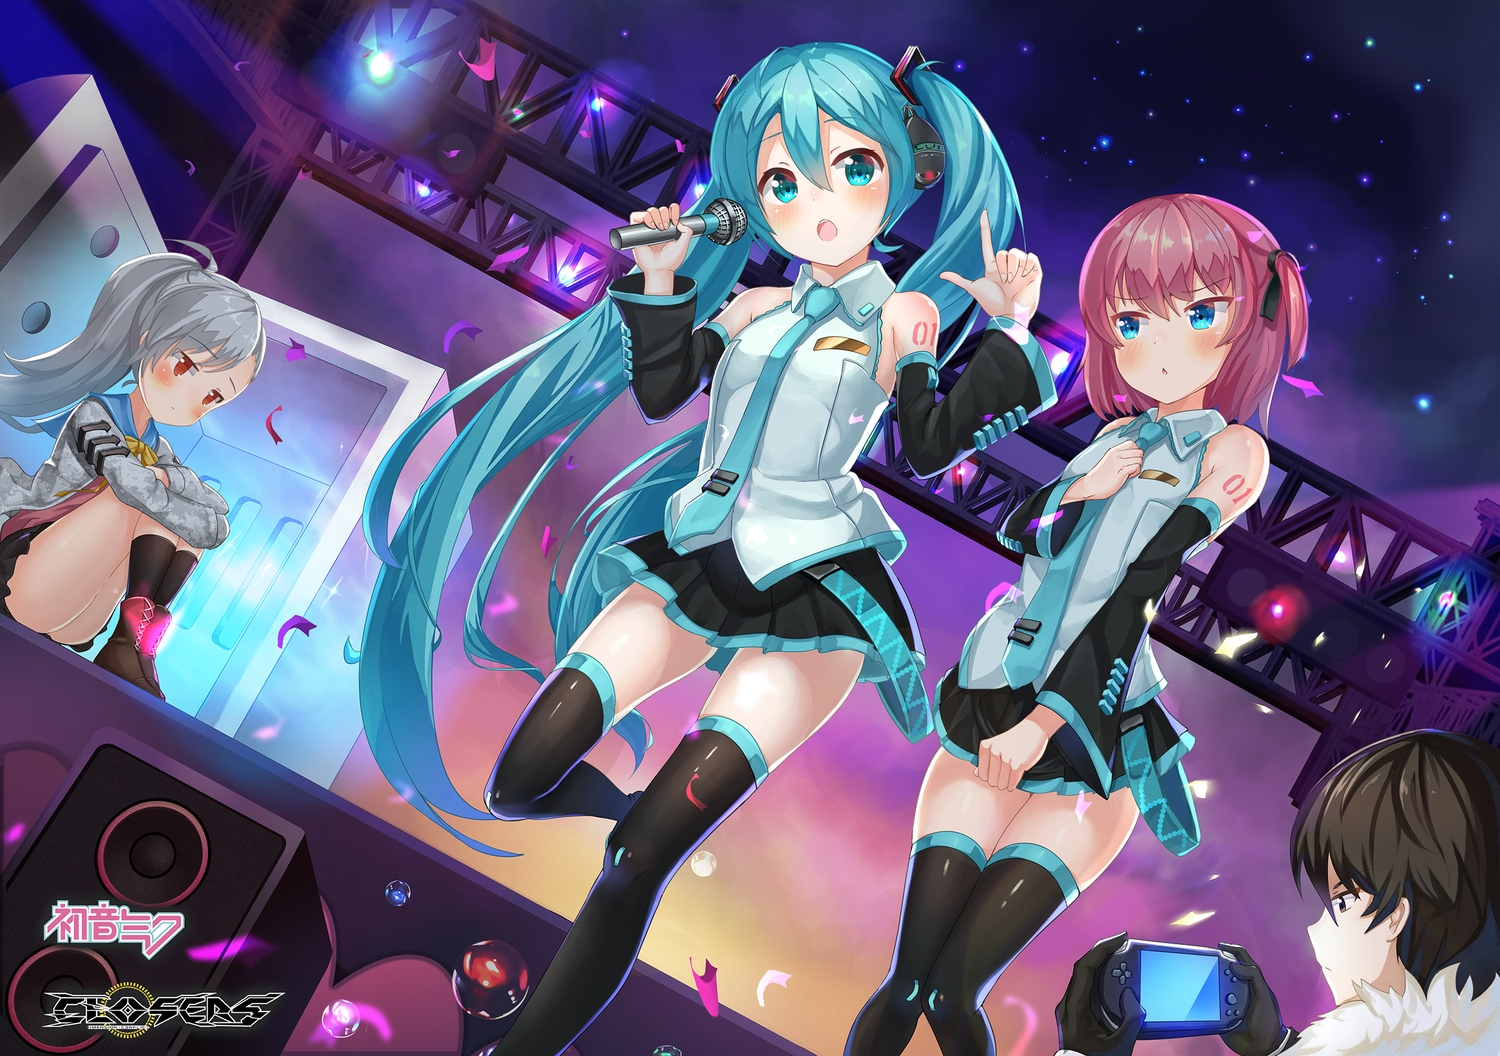 2drr aqua_eyes aqua_hair black_hair blush boots closers cosplay crossover game_console gray_hair hatsune_miku headphones kneehighs lee_seha lee_seulbi logo long_hair male microphone pink_hair ponytail short_hair skirt tattoo thighhighs tie tina_(closers) twintails vocaloid